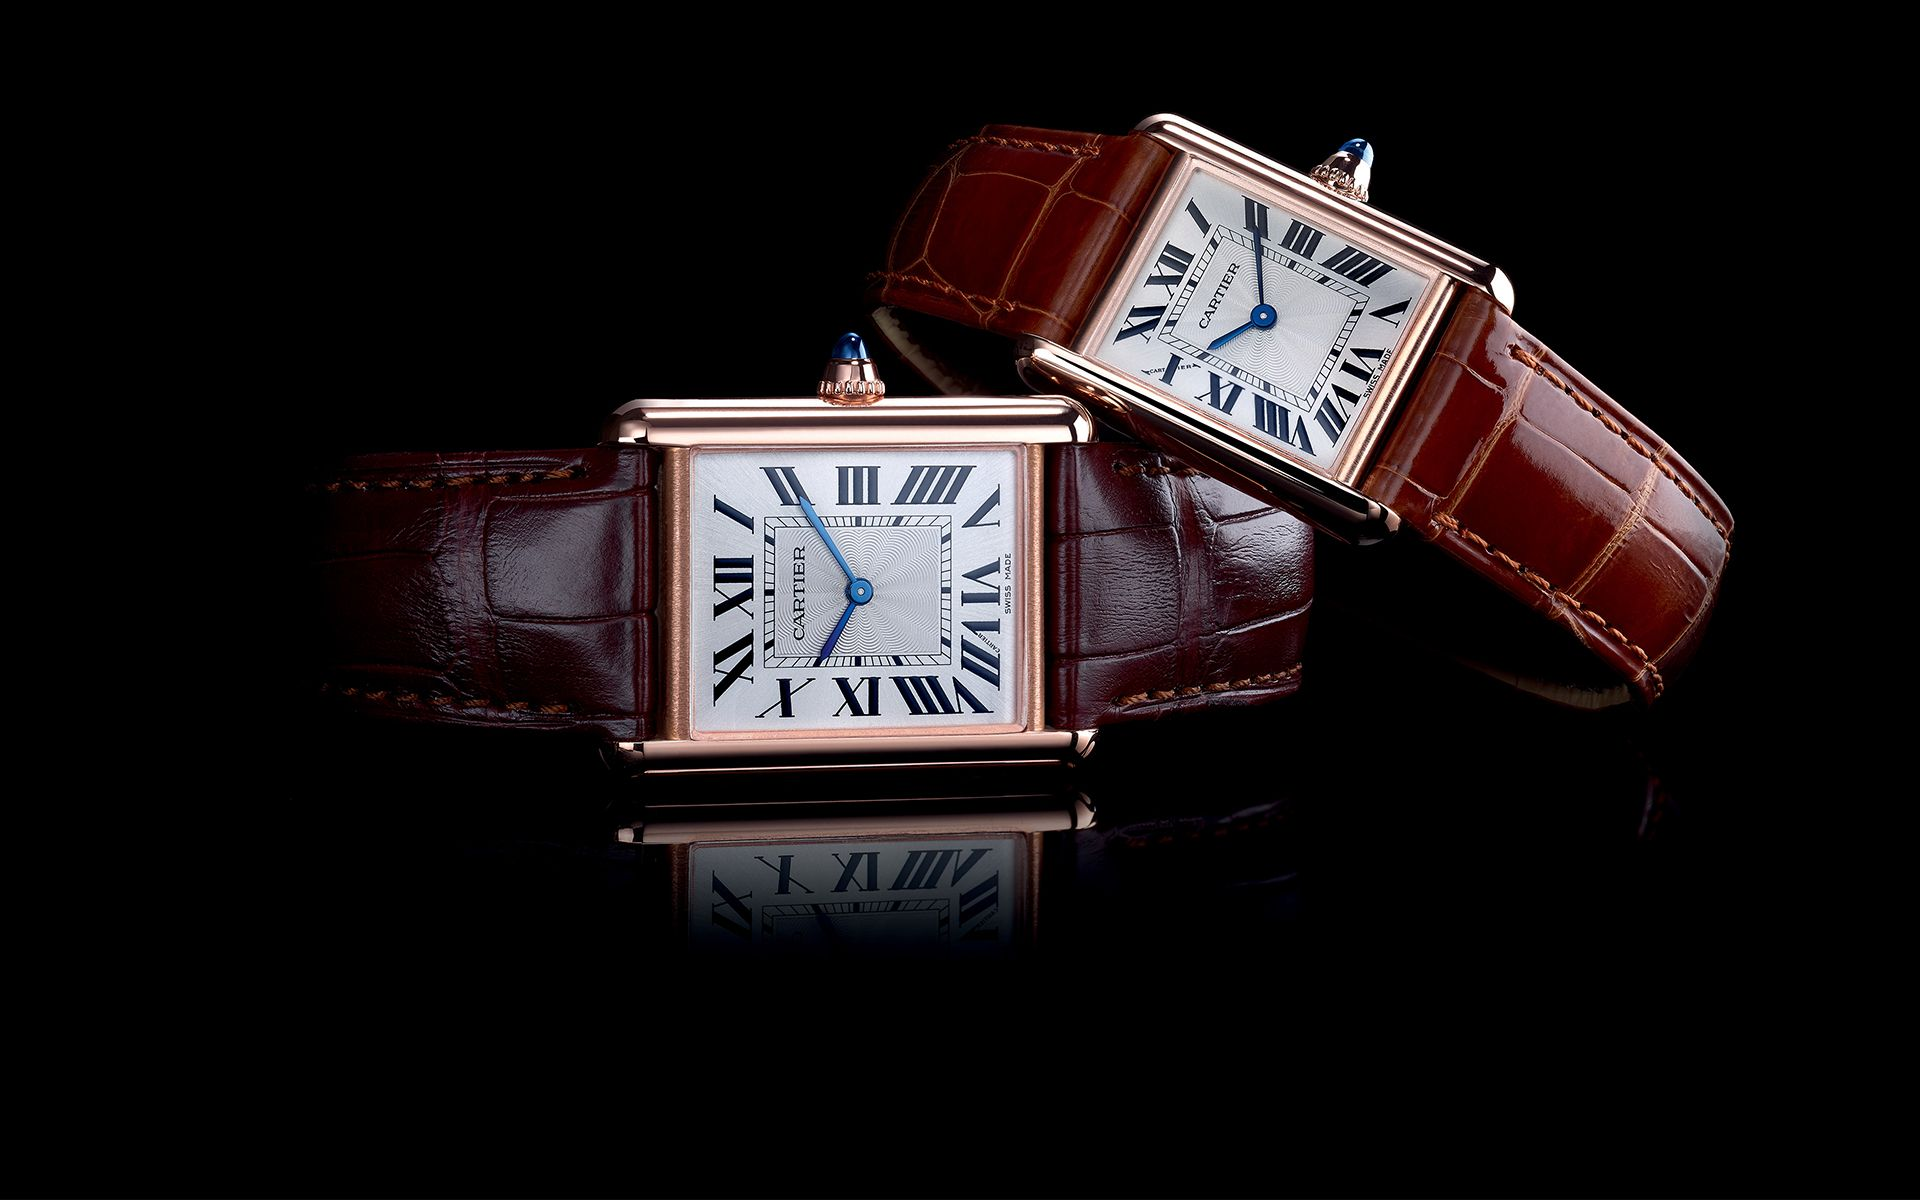 Built To Last: The Cartier Tank Turns 100